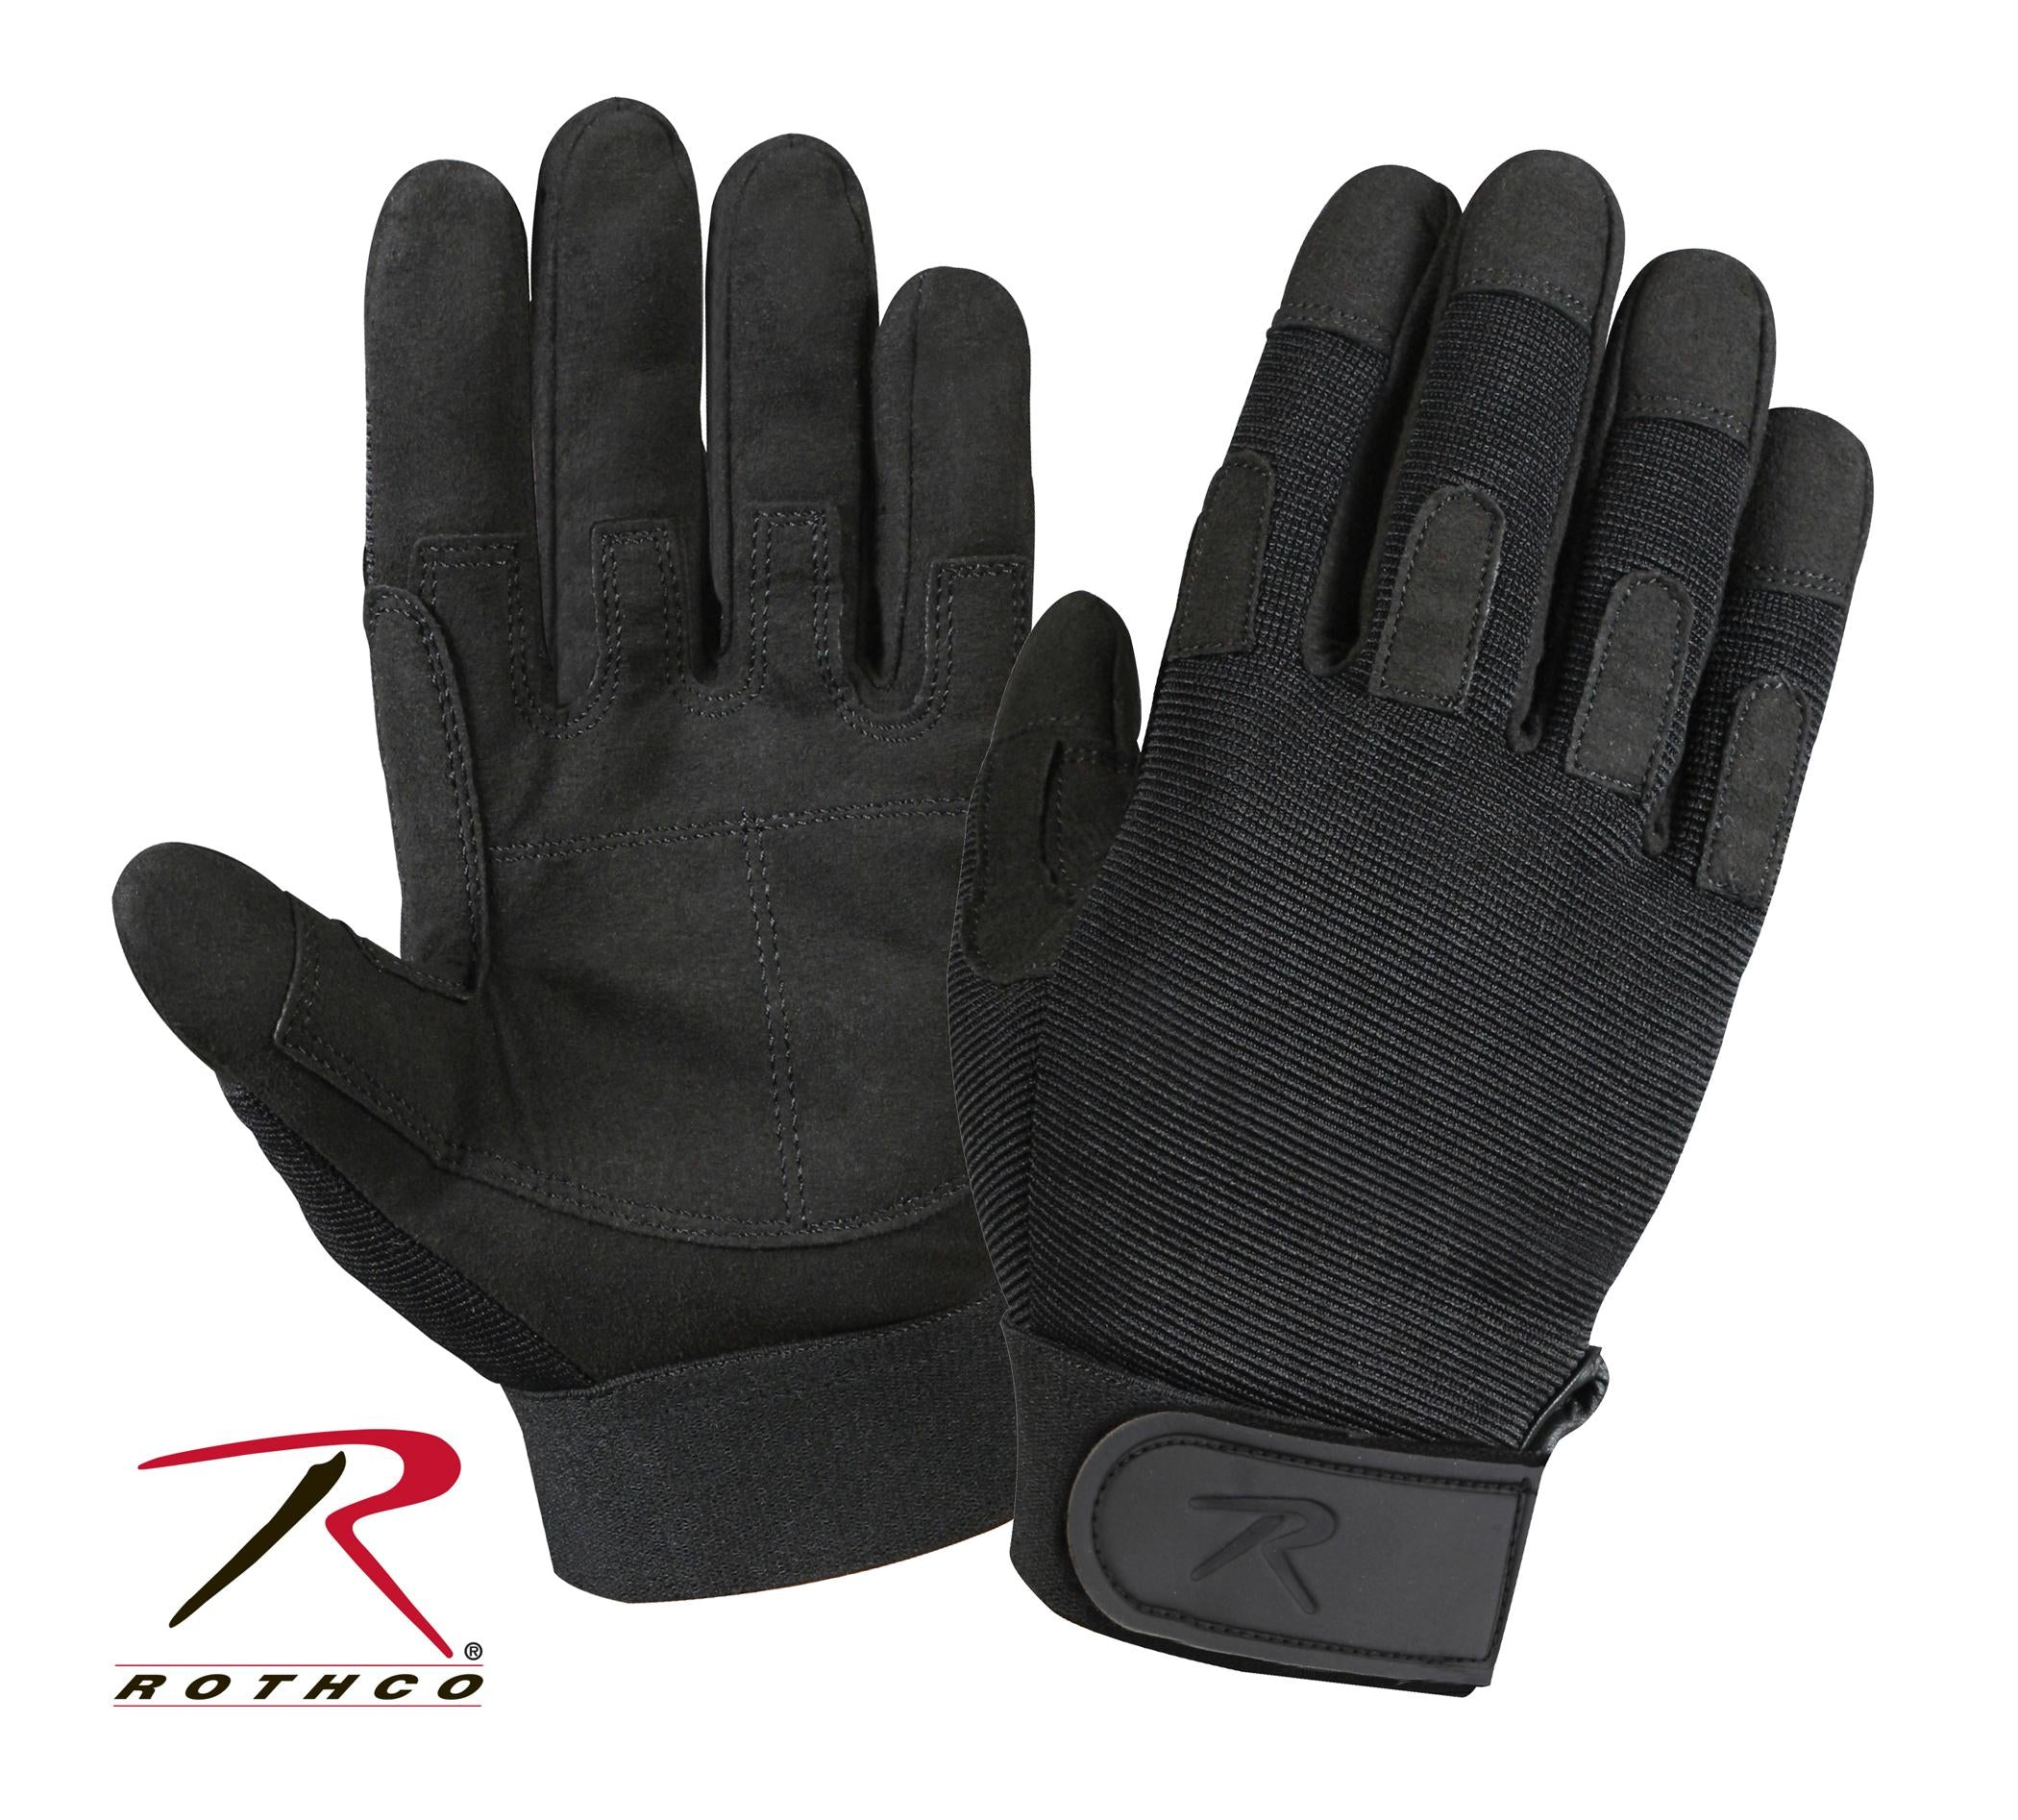 Rothco Lightweight All Purpose Duty Gloves - Black / 2XL